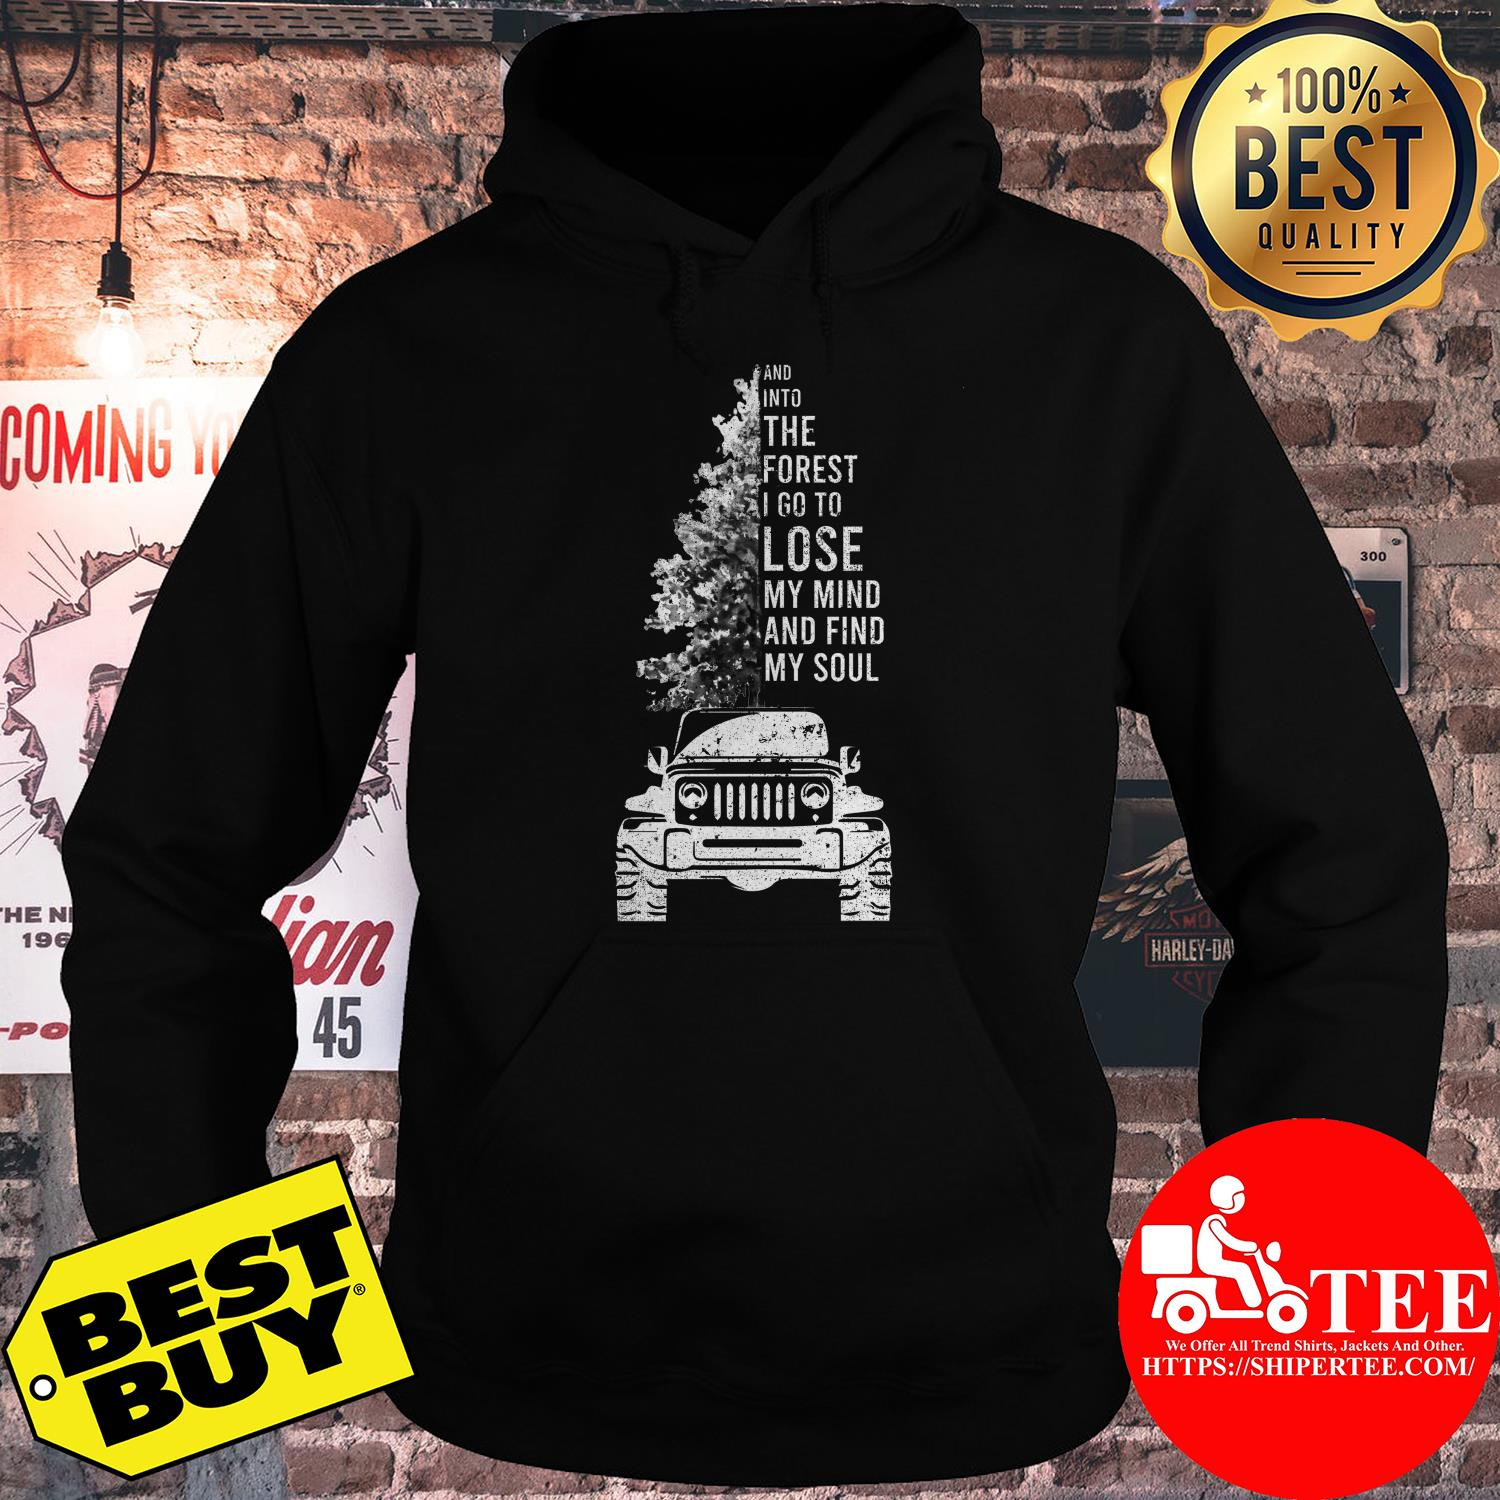 Trees and into the forest I go to lose my mind and find my soul hoodie